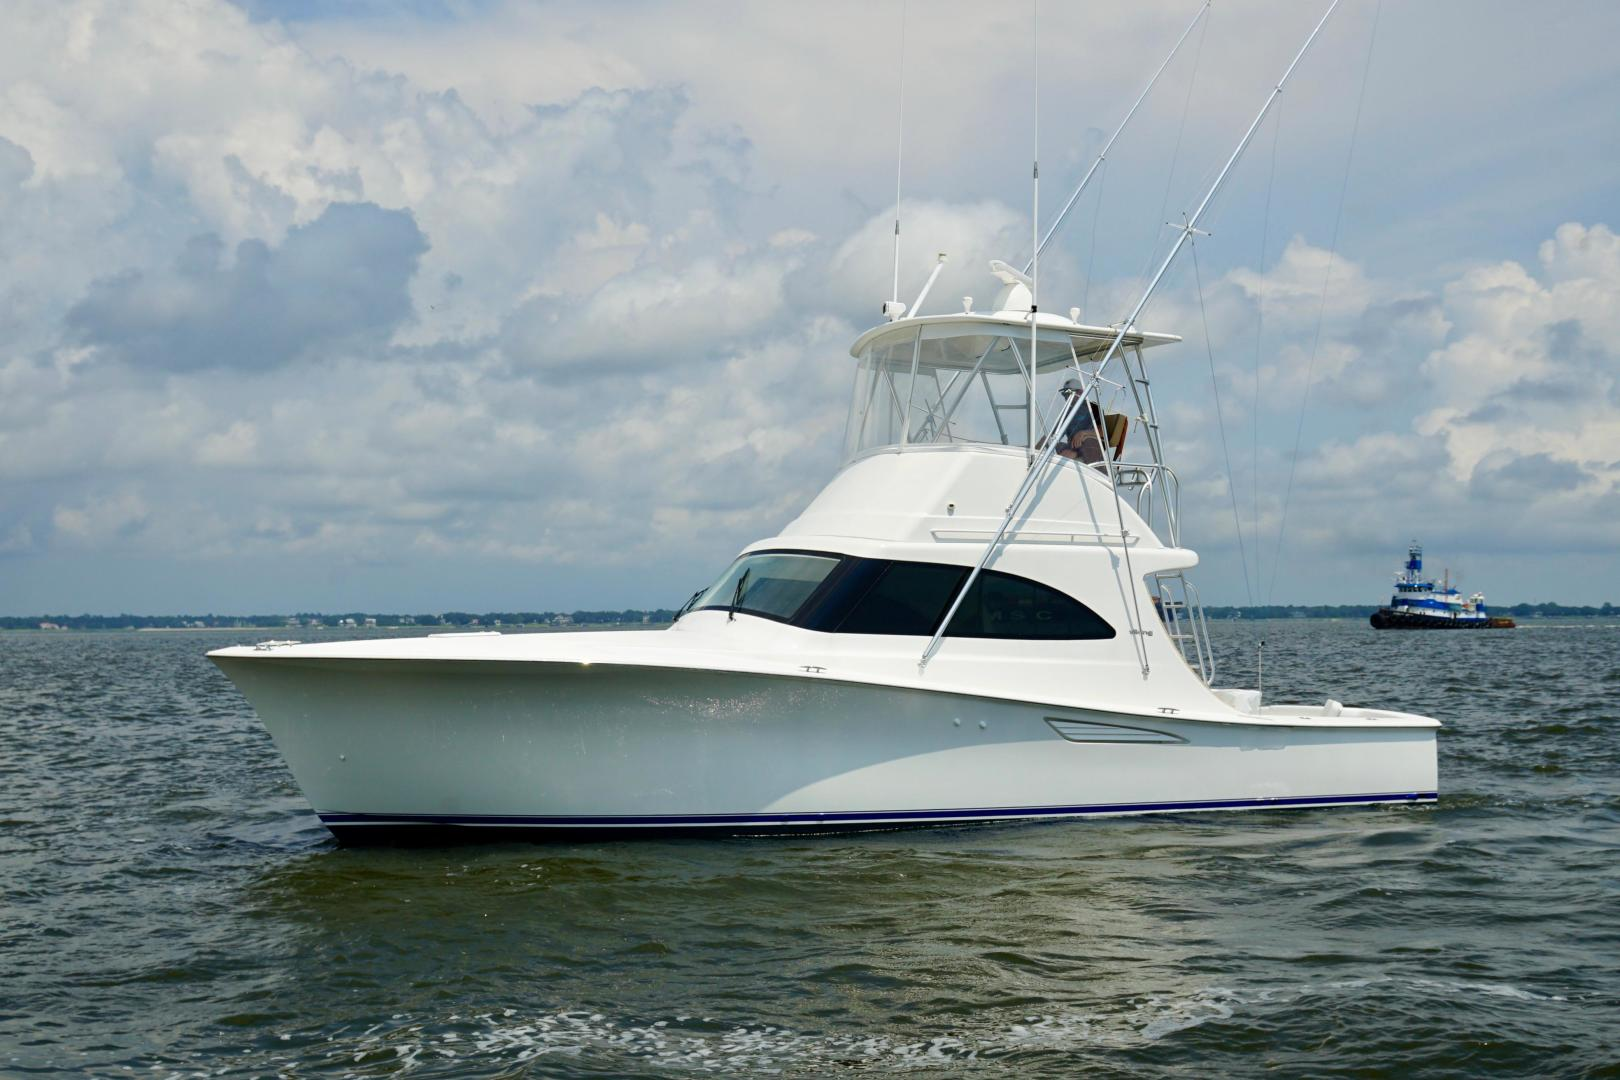 Viking-Billfish 2018-Bikini Bottom Morehead City-North Carolina-United States-exterior-profile-1475503 | Thumbnail